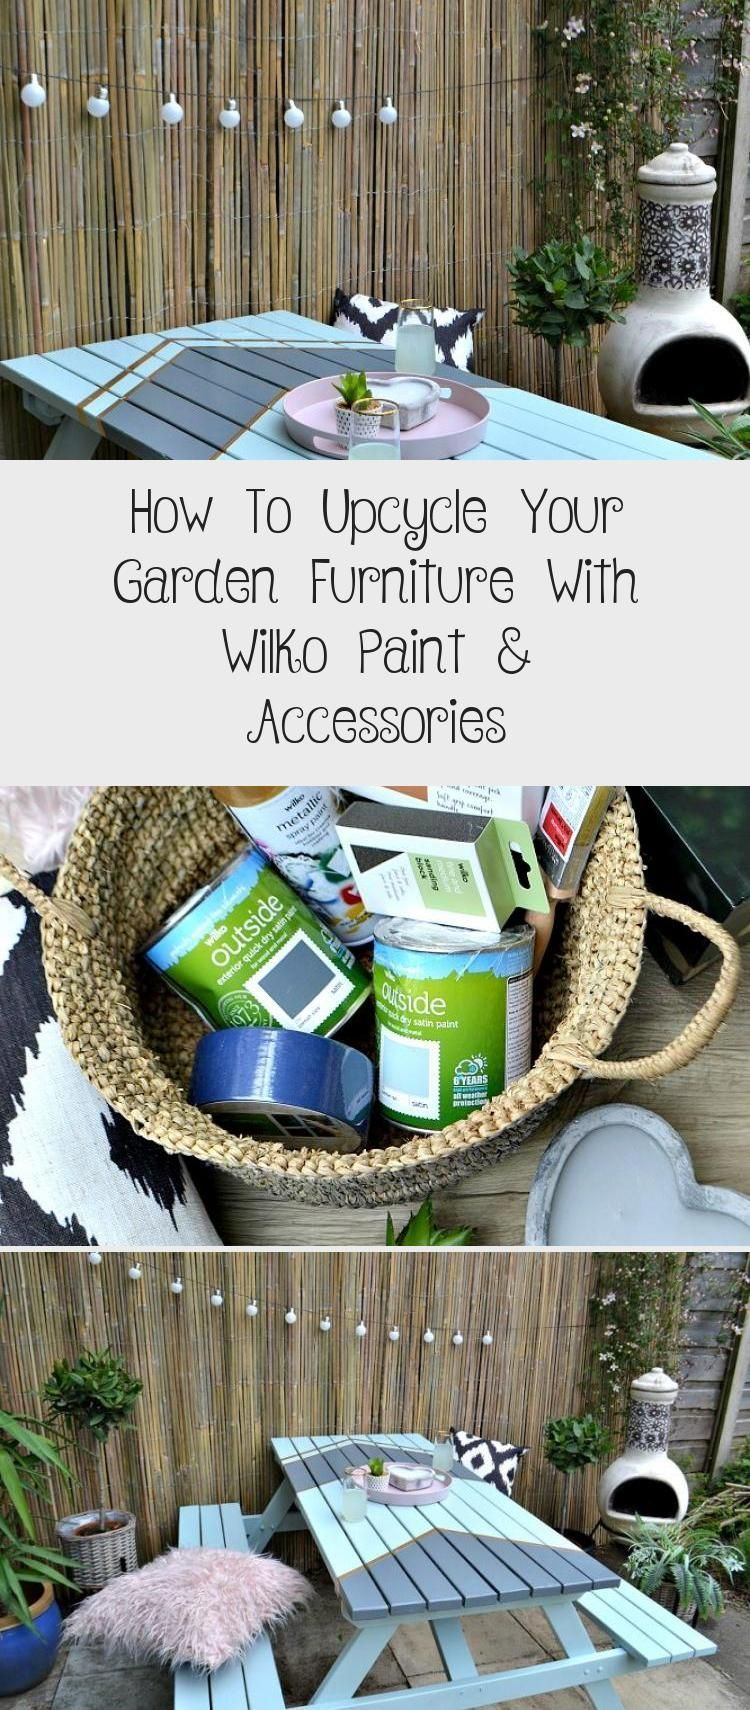 How To Upcycle Your Garden Furniture With Wilko Paint Accessories Garden Gard Accessories Furniture In 2020 Garden Furniture Wilko Paint Wooden Garden Furniture